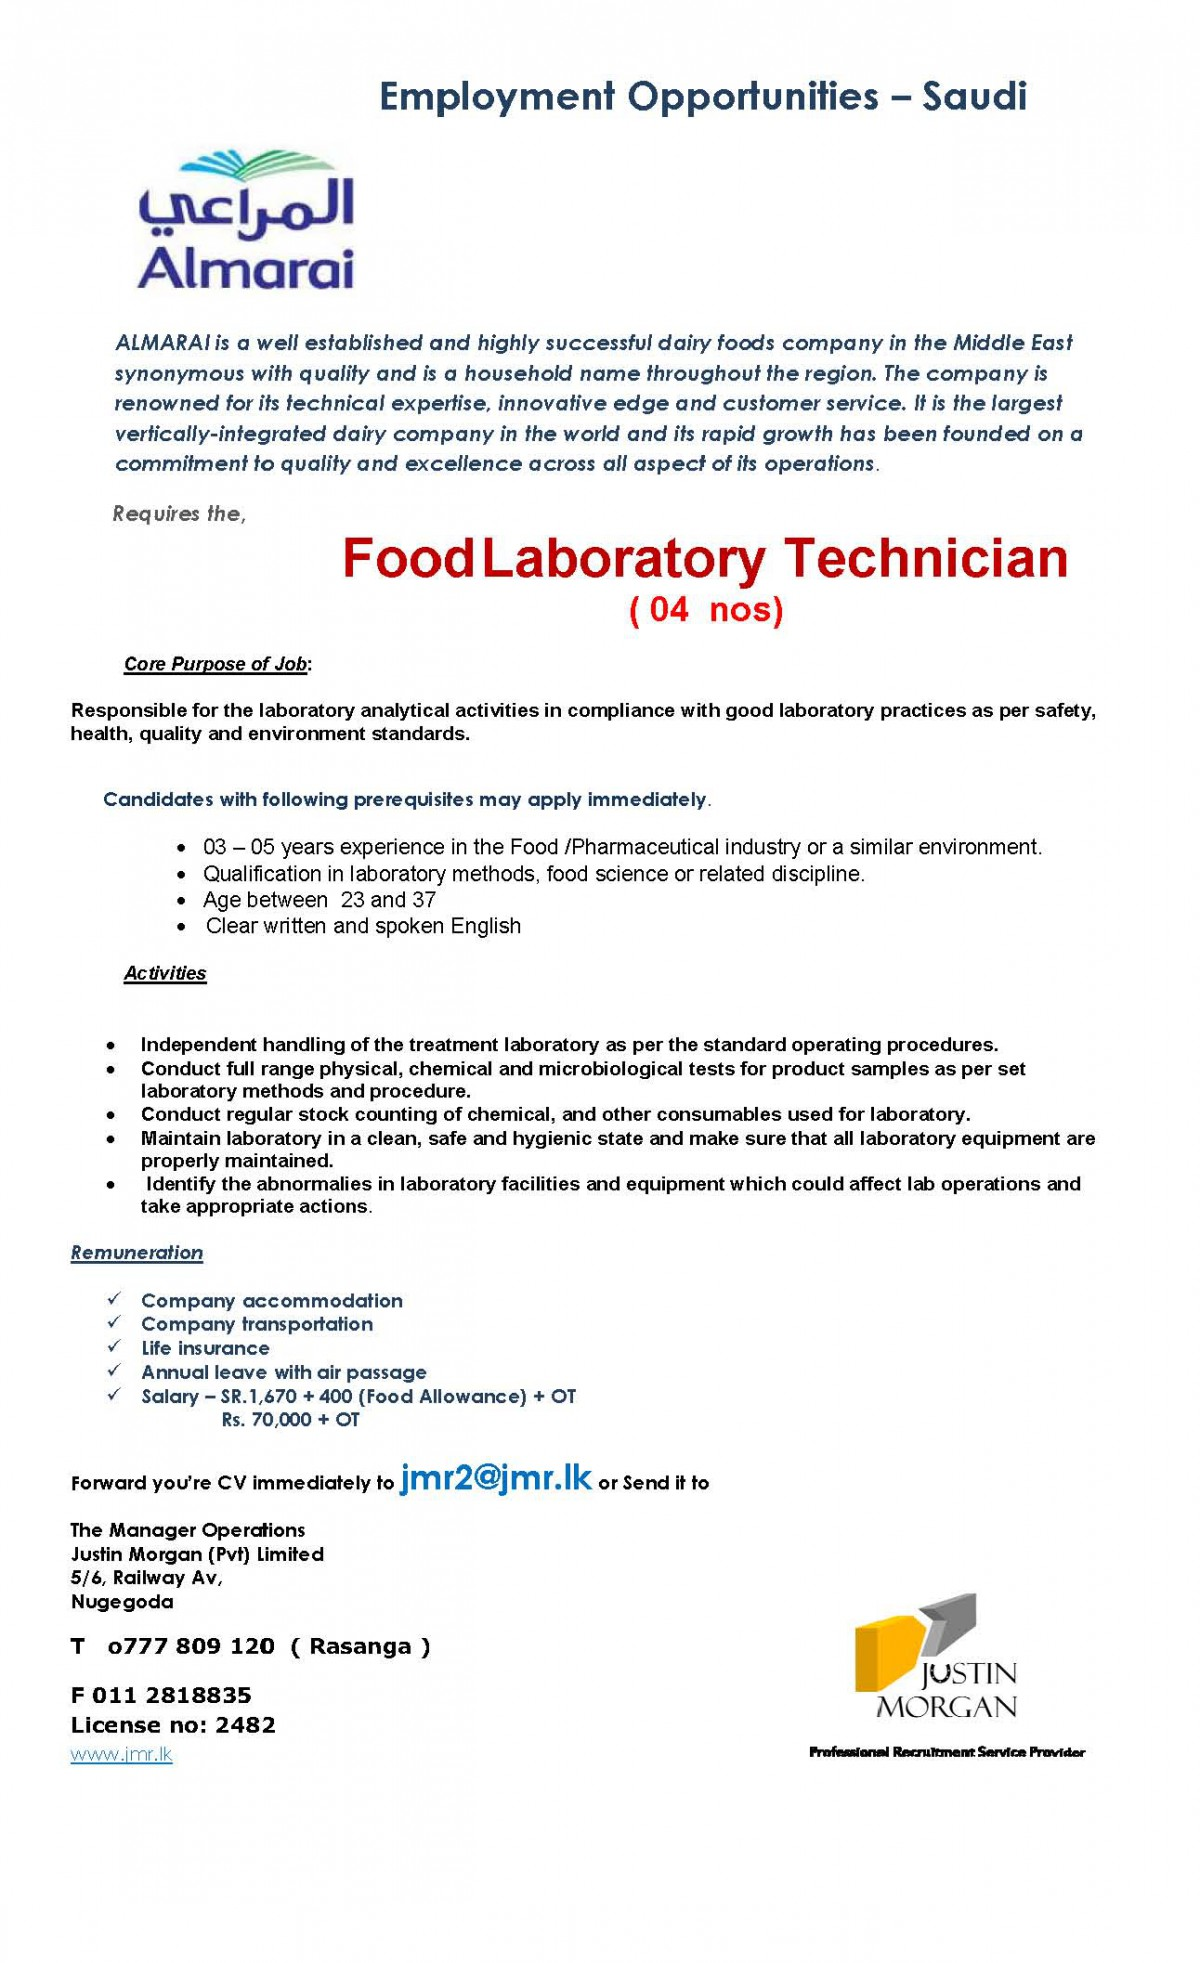 almarai dairy technilogist job vacancy in sri lanka 03 05 years experience in the food pharmaceutical industry or a similar environment qualification in laboratory methods food science or related